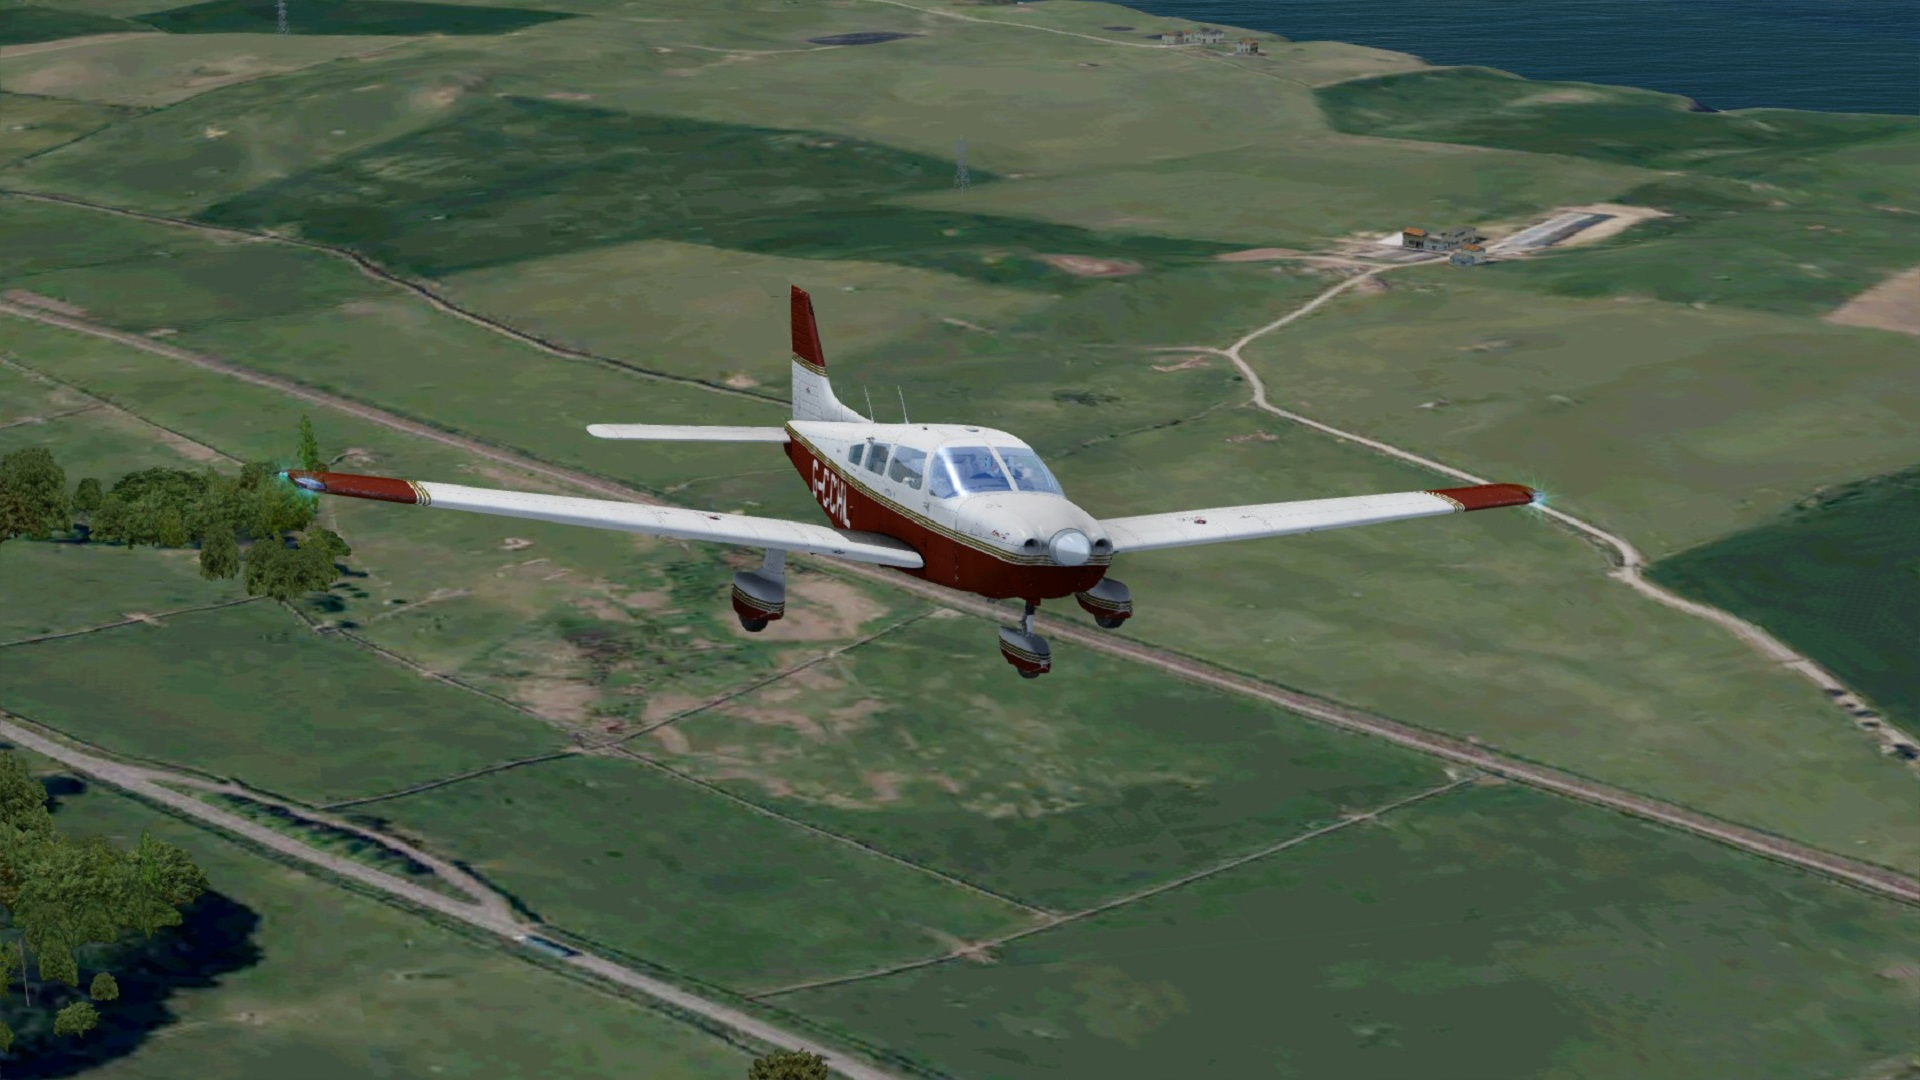 JUSTFLIGHT - VFR REAL SCENERY NEXGEN 3D VOL 3 NORTHERN ENGLAND FSX P3D